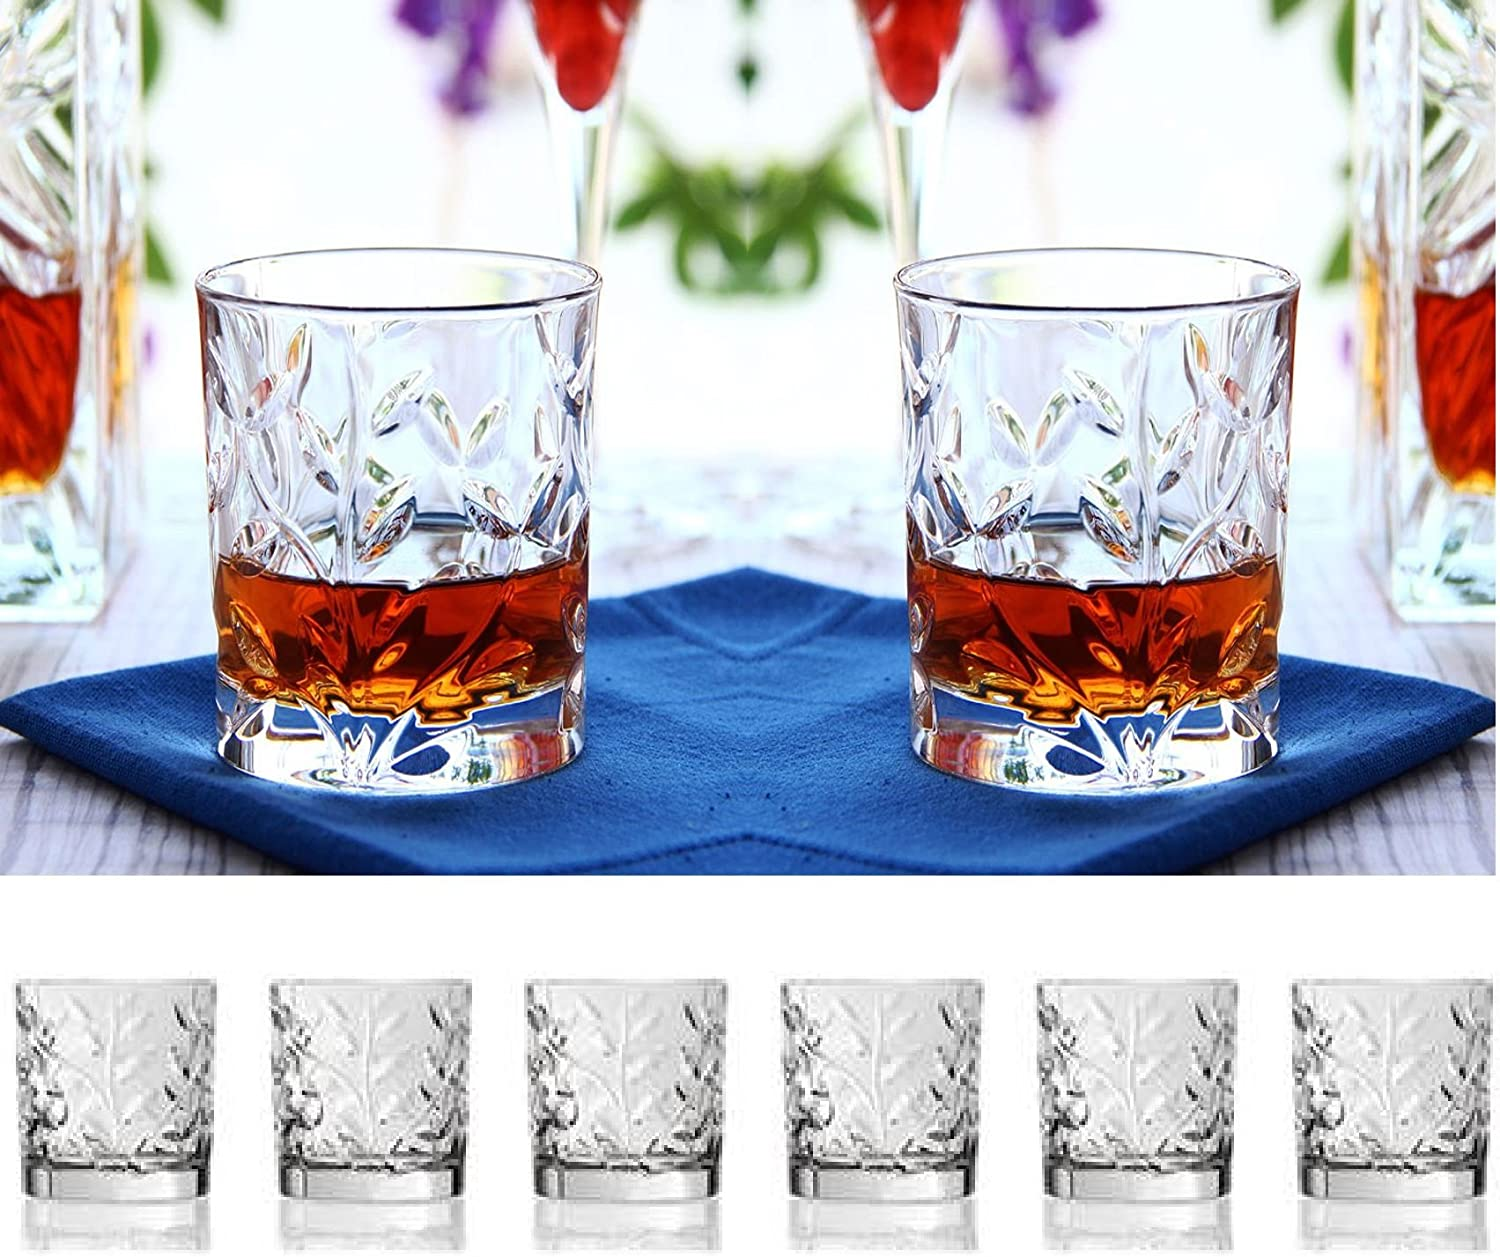 Set Of Six Whiskey Scotch Bourbon Crystal Double Old Fashioned Glasses,With Leaf Twig Design, DOF Tumbler Glasses Holds 11oz